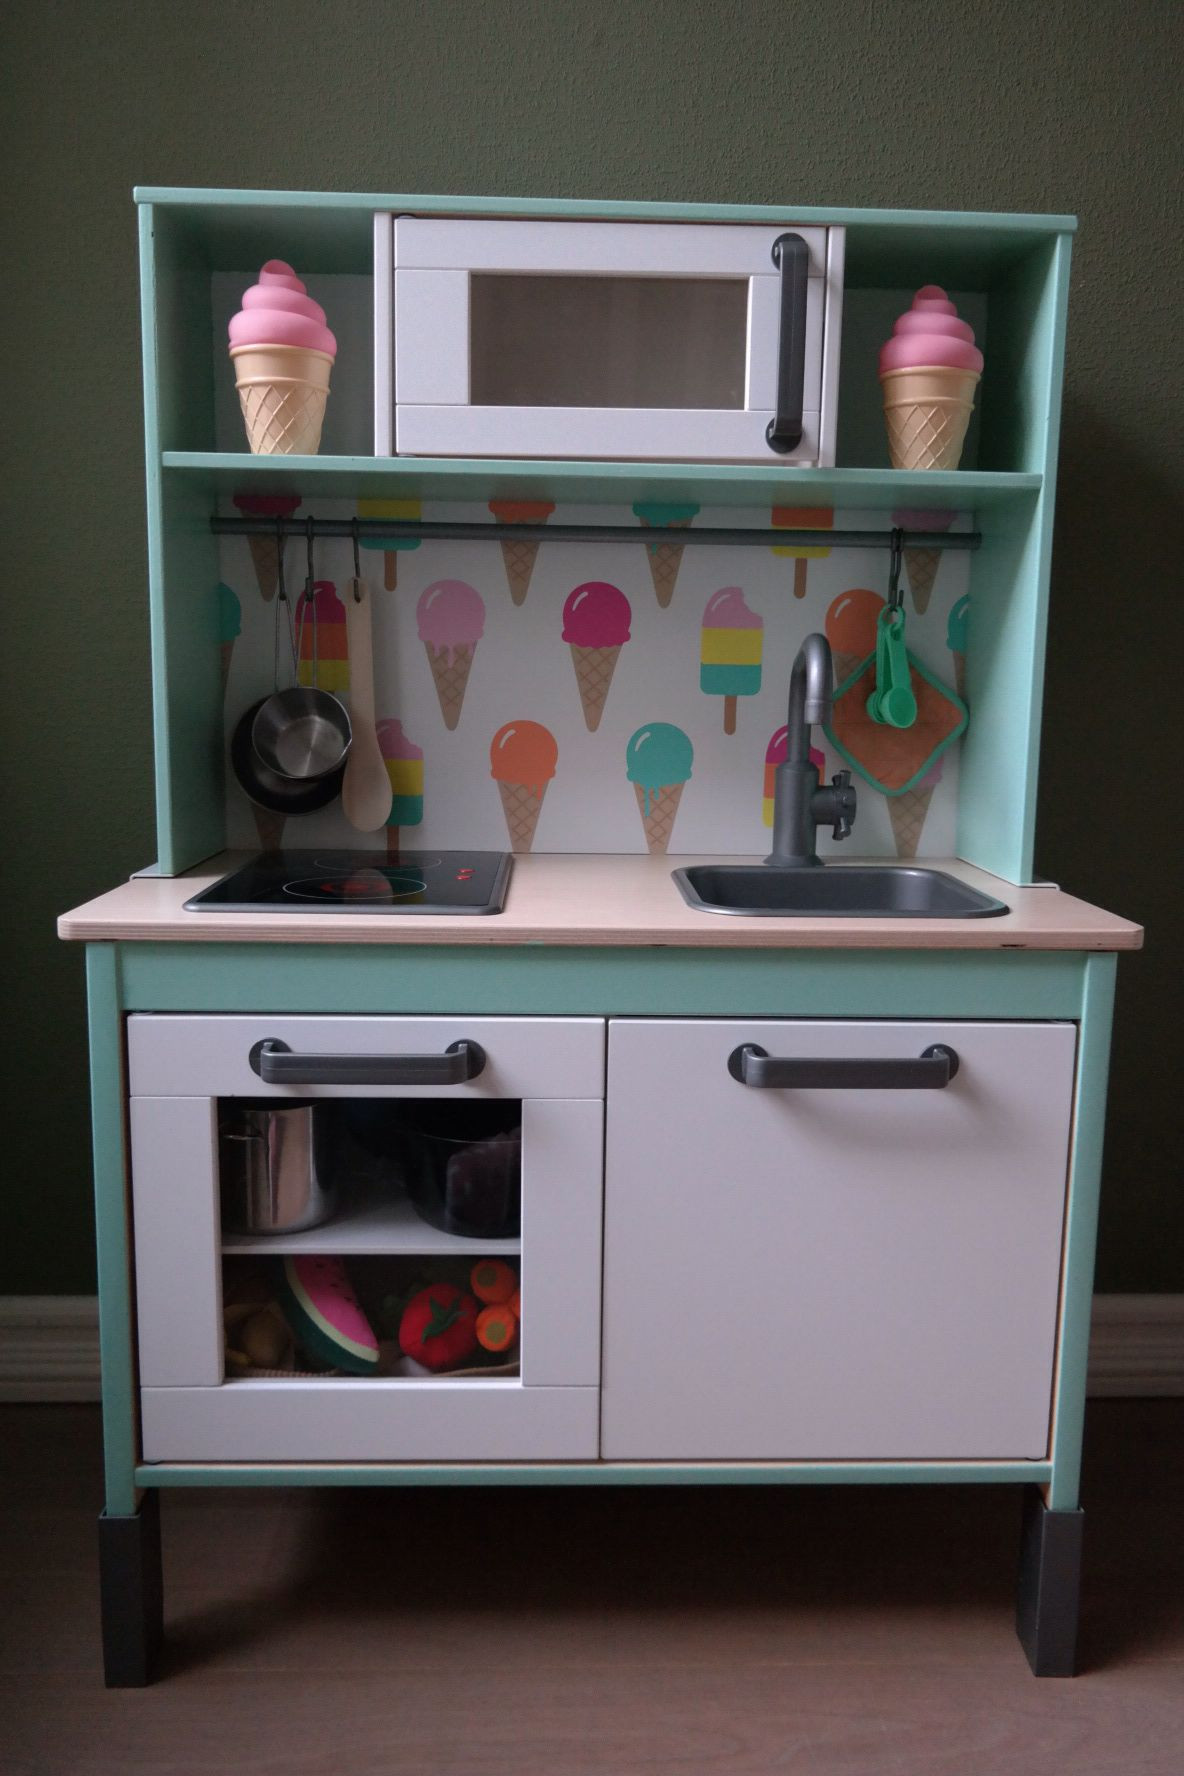 Best ideas about DIY Ikea Kitchen . Save or Pin Our little girls loves her diy Ikea Duktig play kitchen Now.